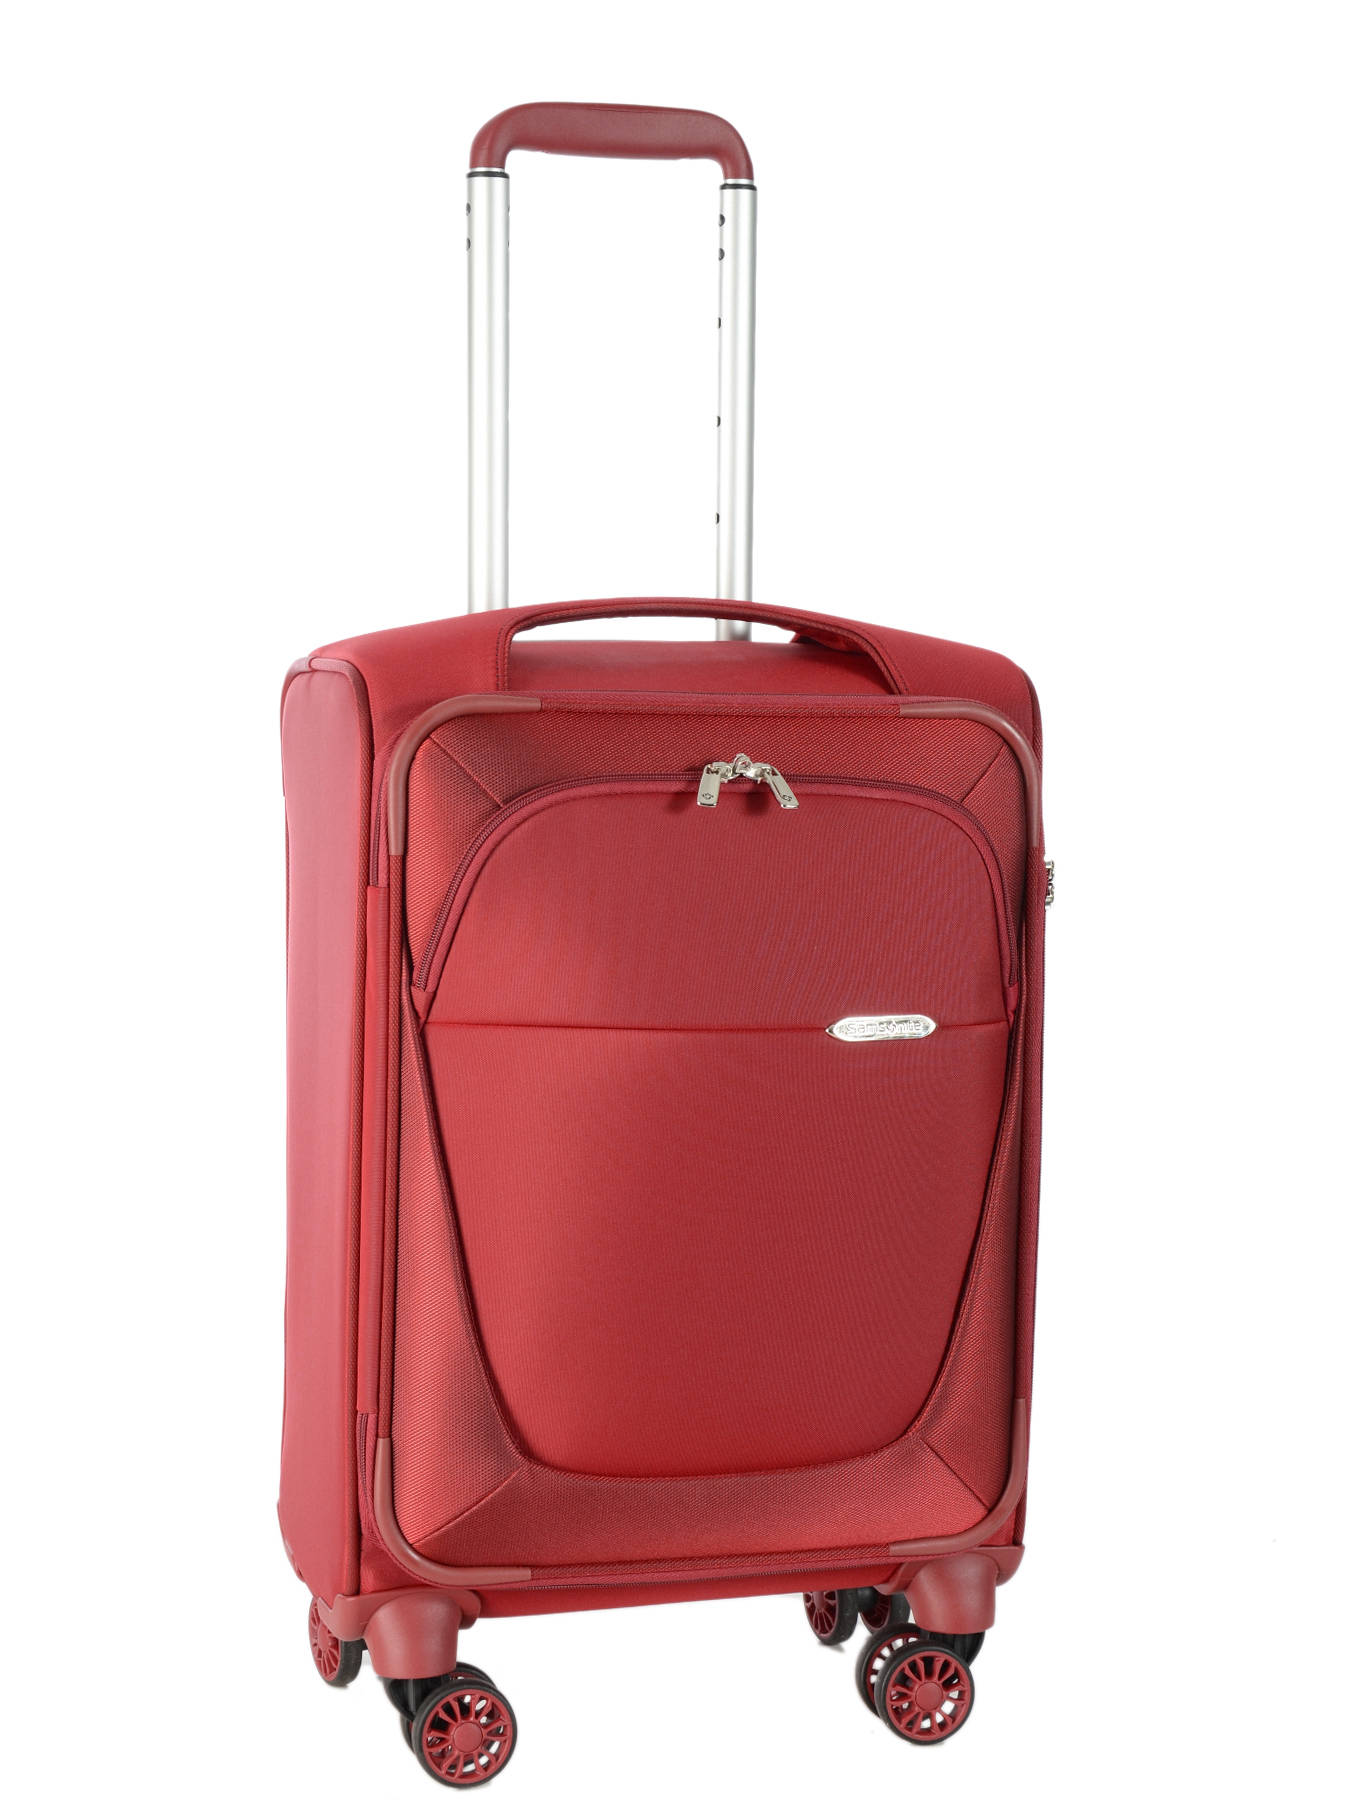 valise cabine samsonite b lite 3 red en vente au meilleur prix. Black Bedroom Furniture Sets. Home Design Ideas